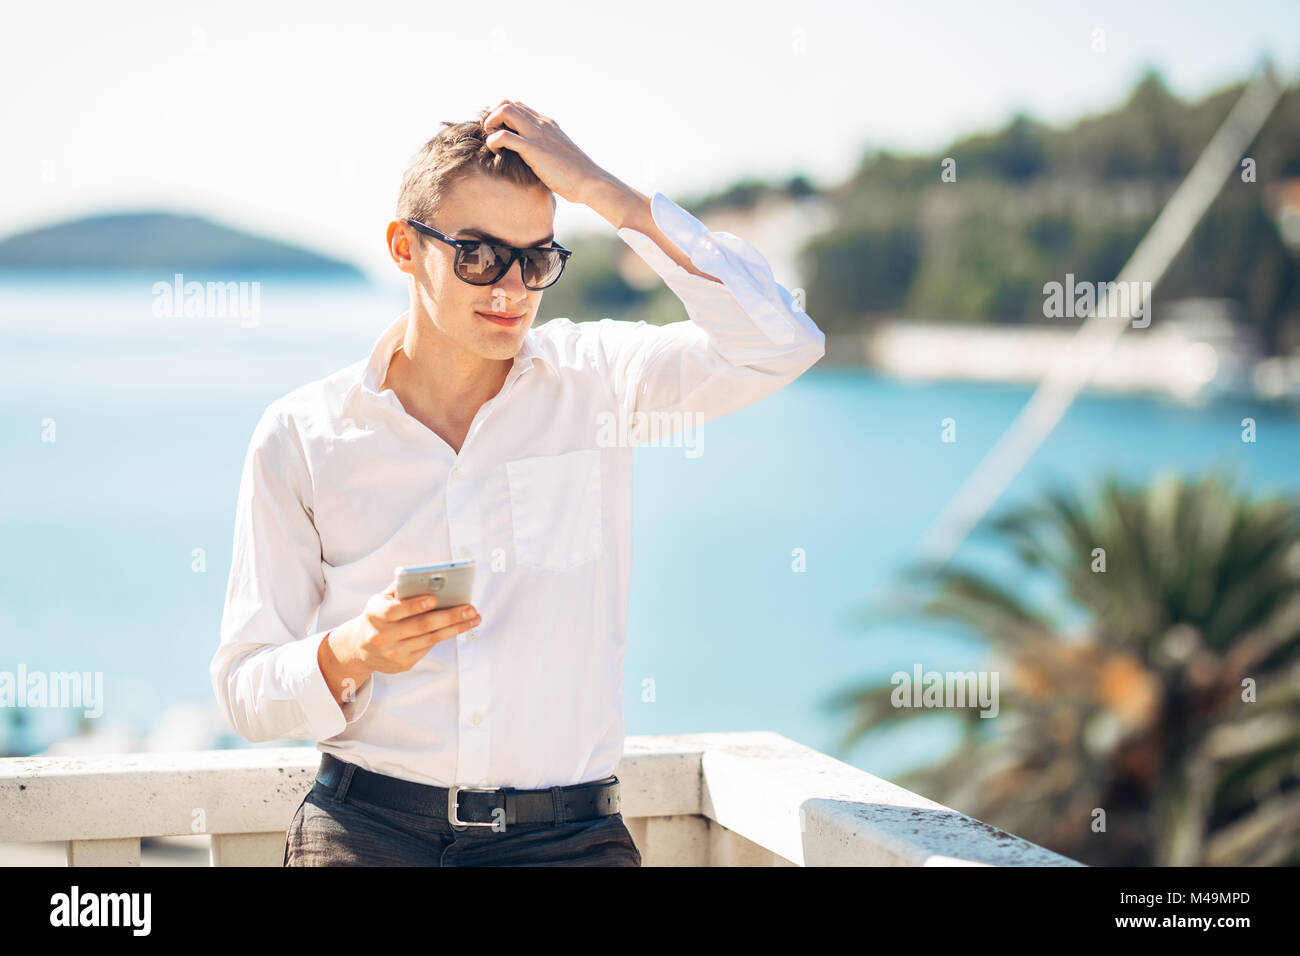 Young handsome man enjoying stay at luxury resort hotel with panoramic view on the sea.Smiling cheerful business - Stock Image